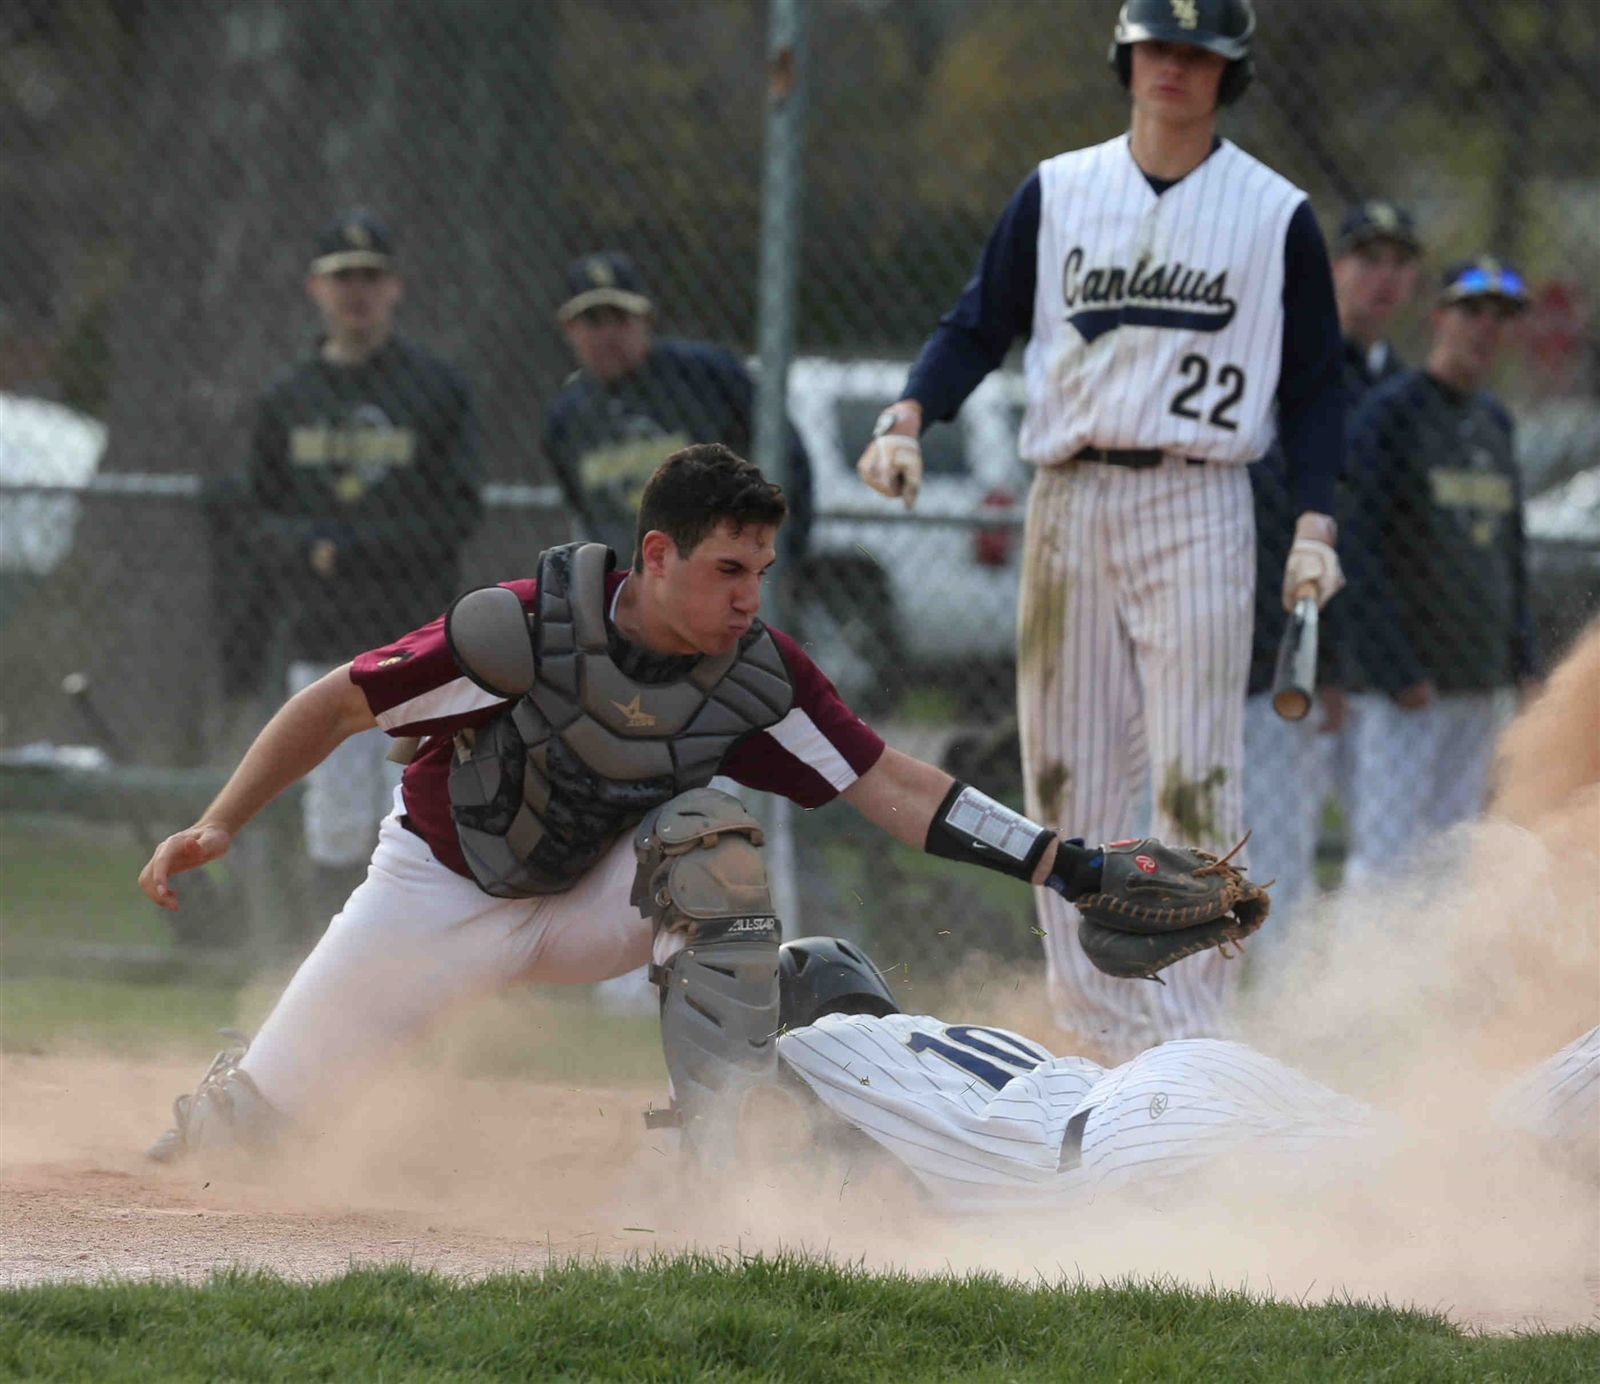 Canisius' Russ Mistretta is tagged out by St. Joe's catcher Dennis Gagiardo.